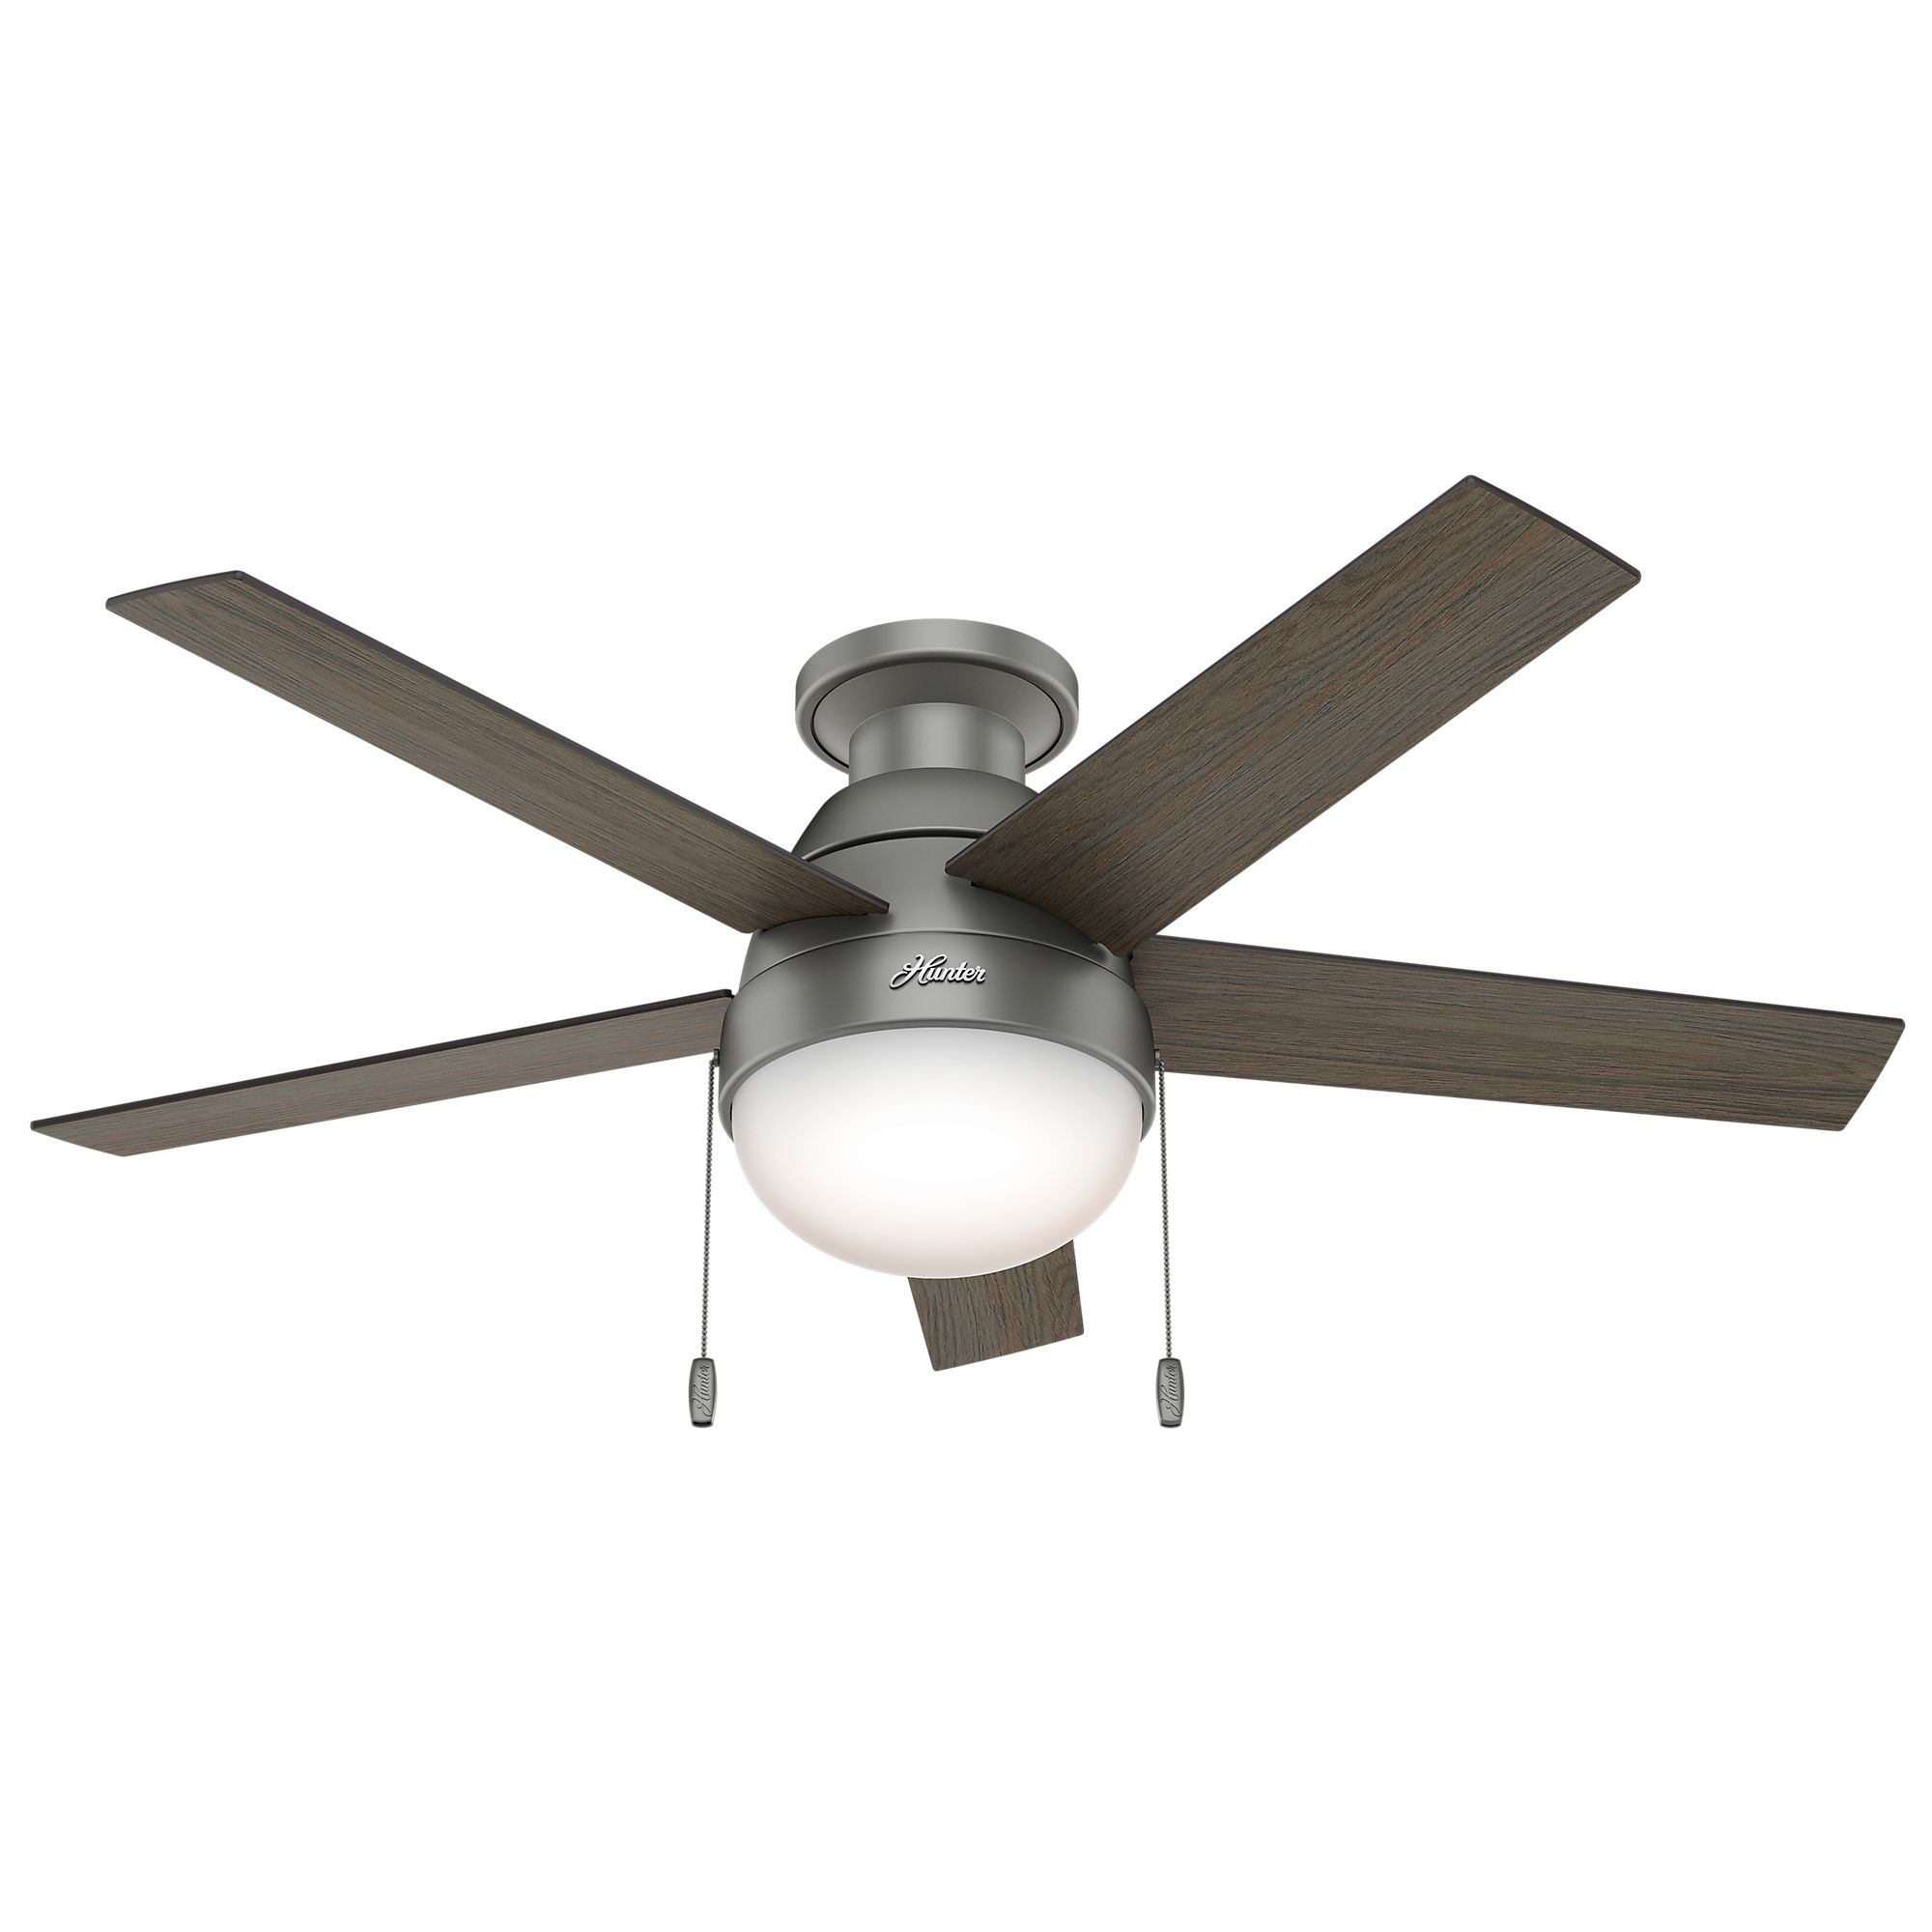 Modern Ceiling Fan With Light Features A Matte Silver Motor With Reversible Grey Oak X2f Grey Walnut Blades Ceiling Fan Modern Ceiling Fan Silver Ceiling Fan